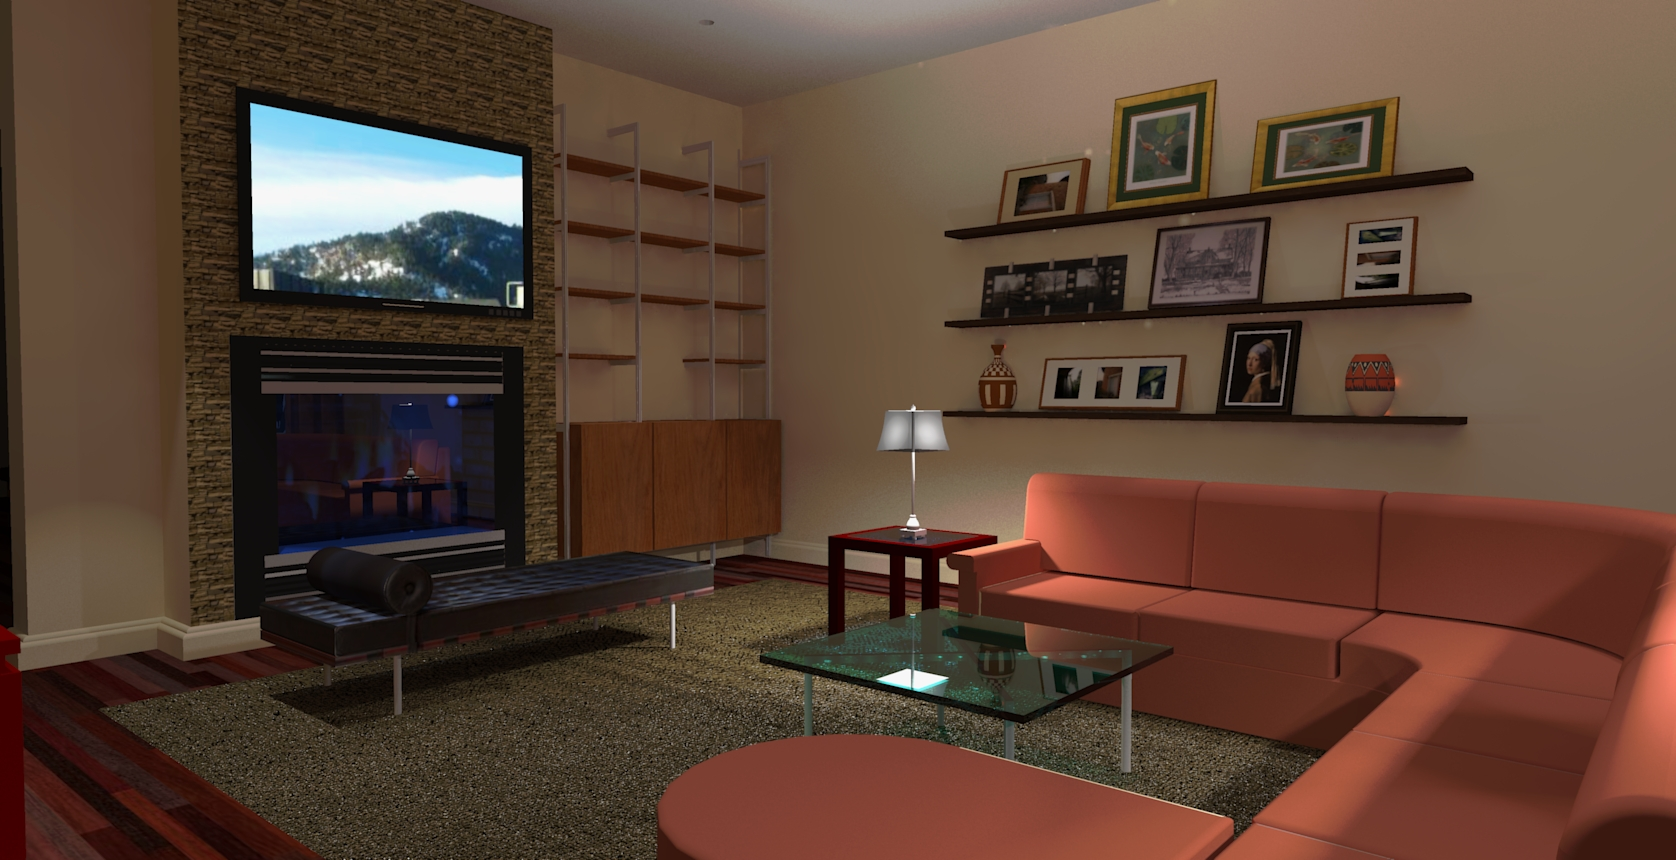 New Home On Staten Island Virtual Renovation